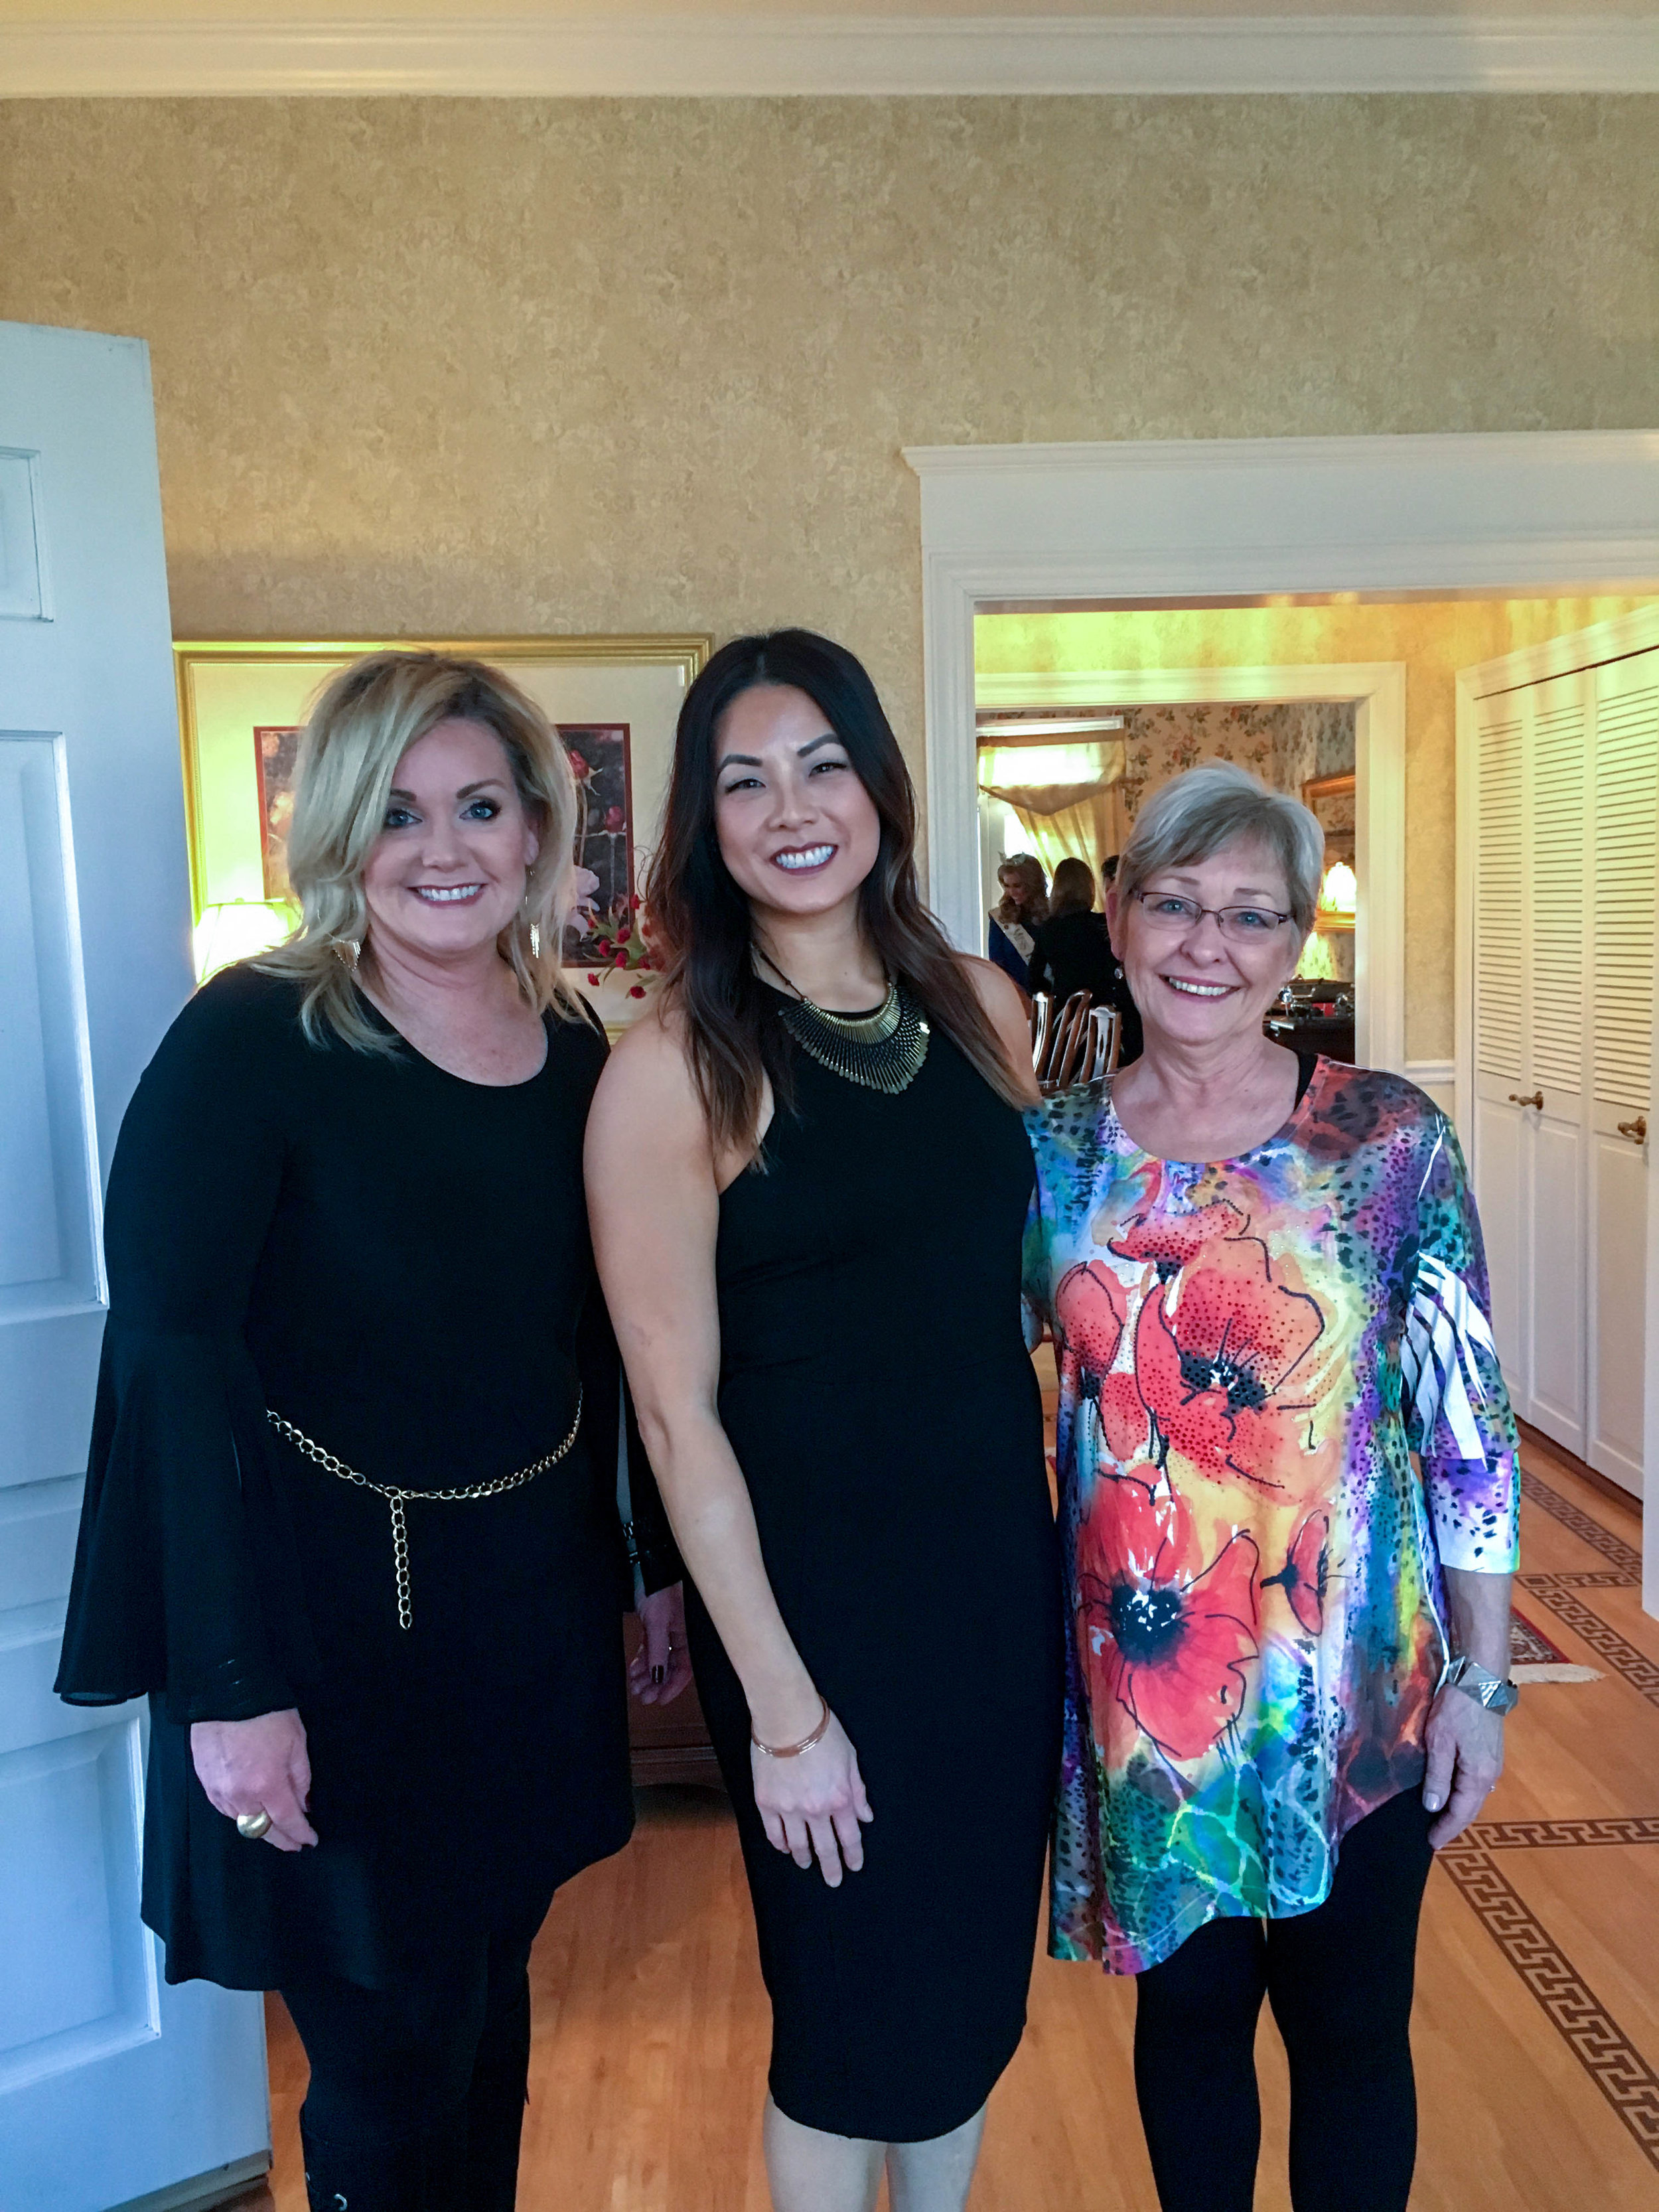 Kathy Waters, Me and Rauna at the Mayor's house.